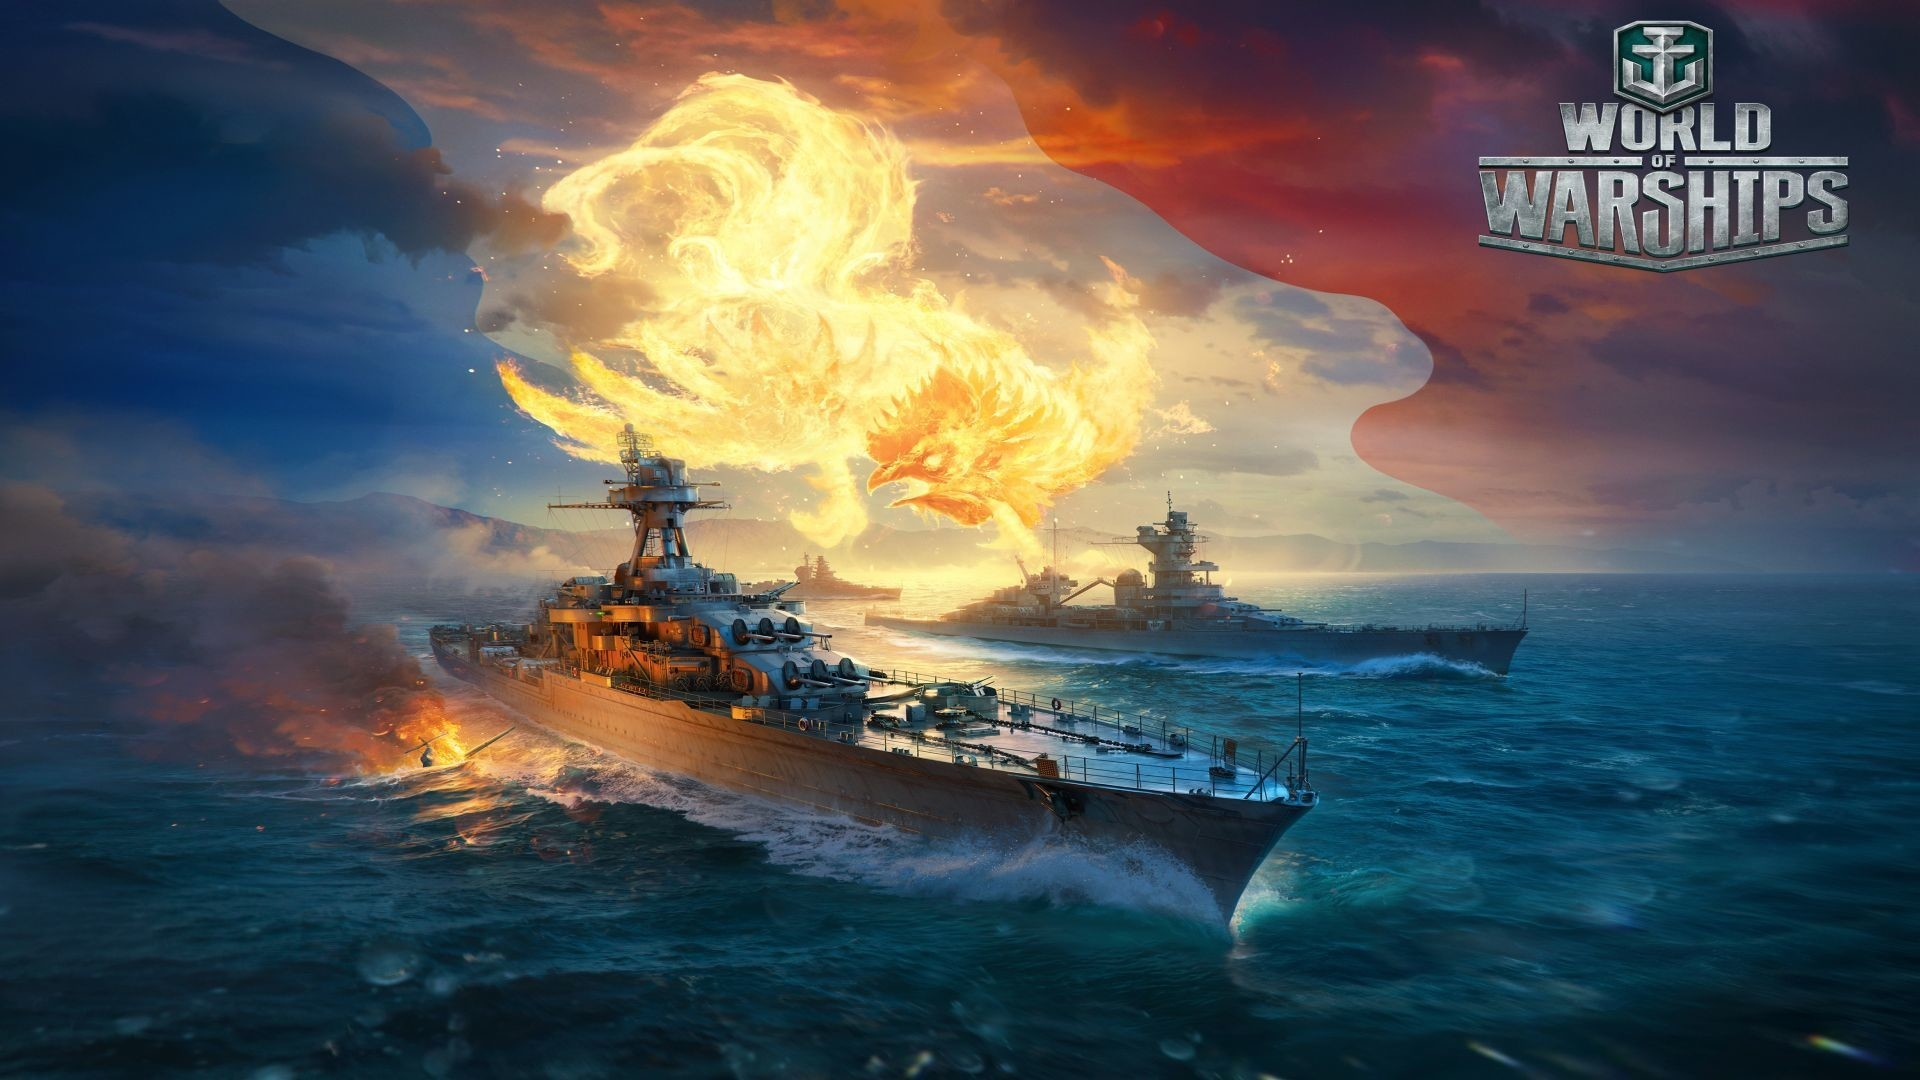 World Of Warships Wallpaper Hd Posted By Ethan Thompson